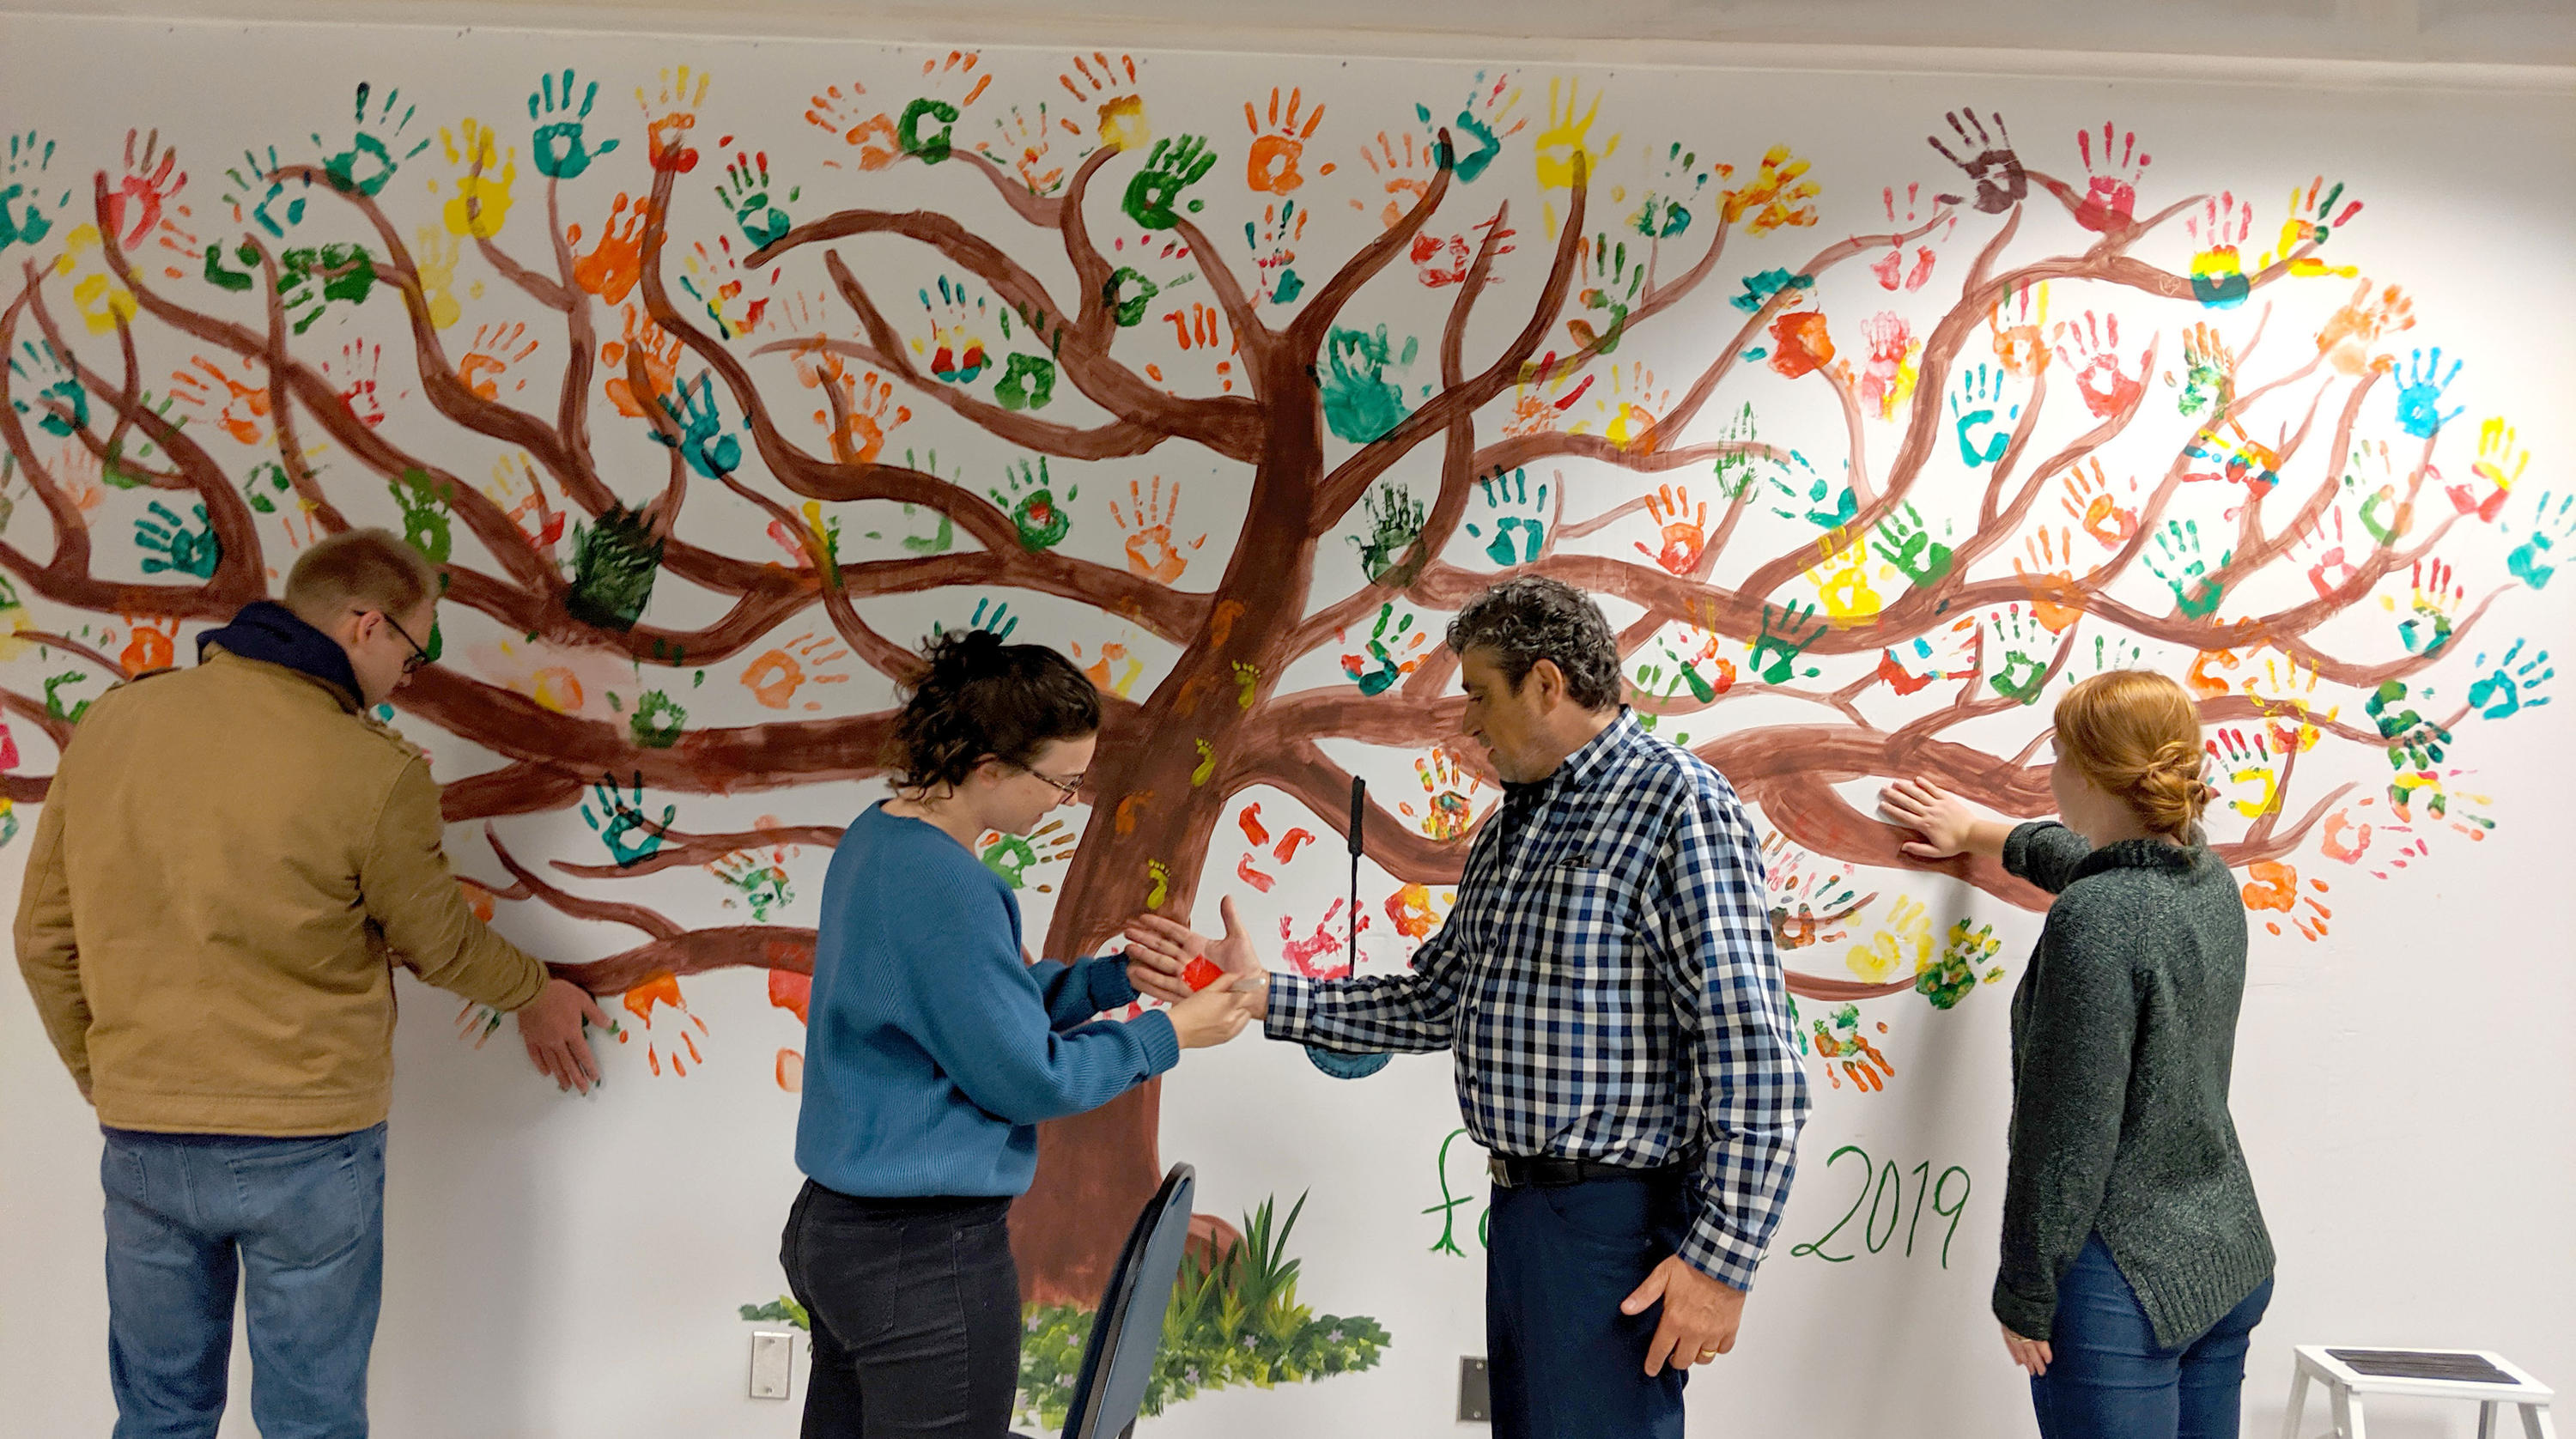 Staff and students adding their handprints to the painted tree in the dining room